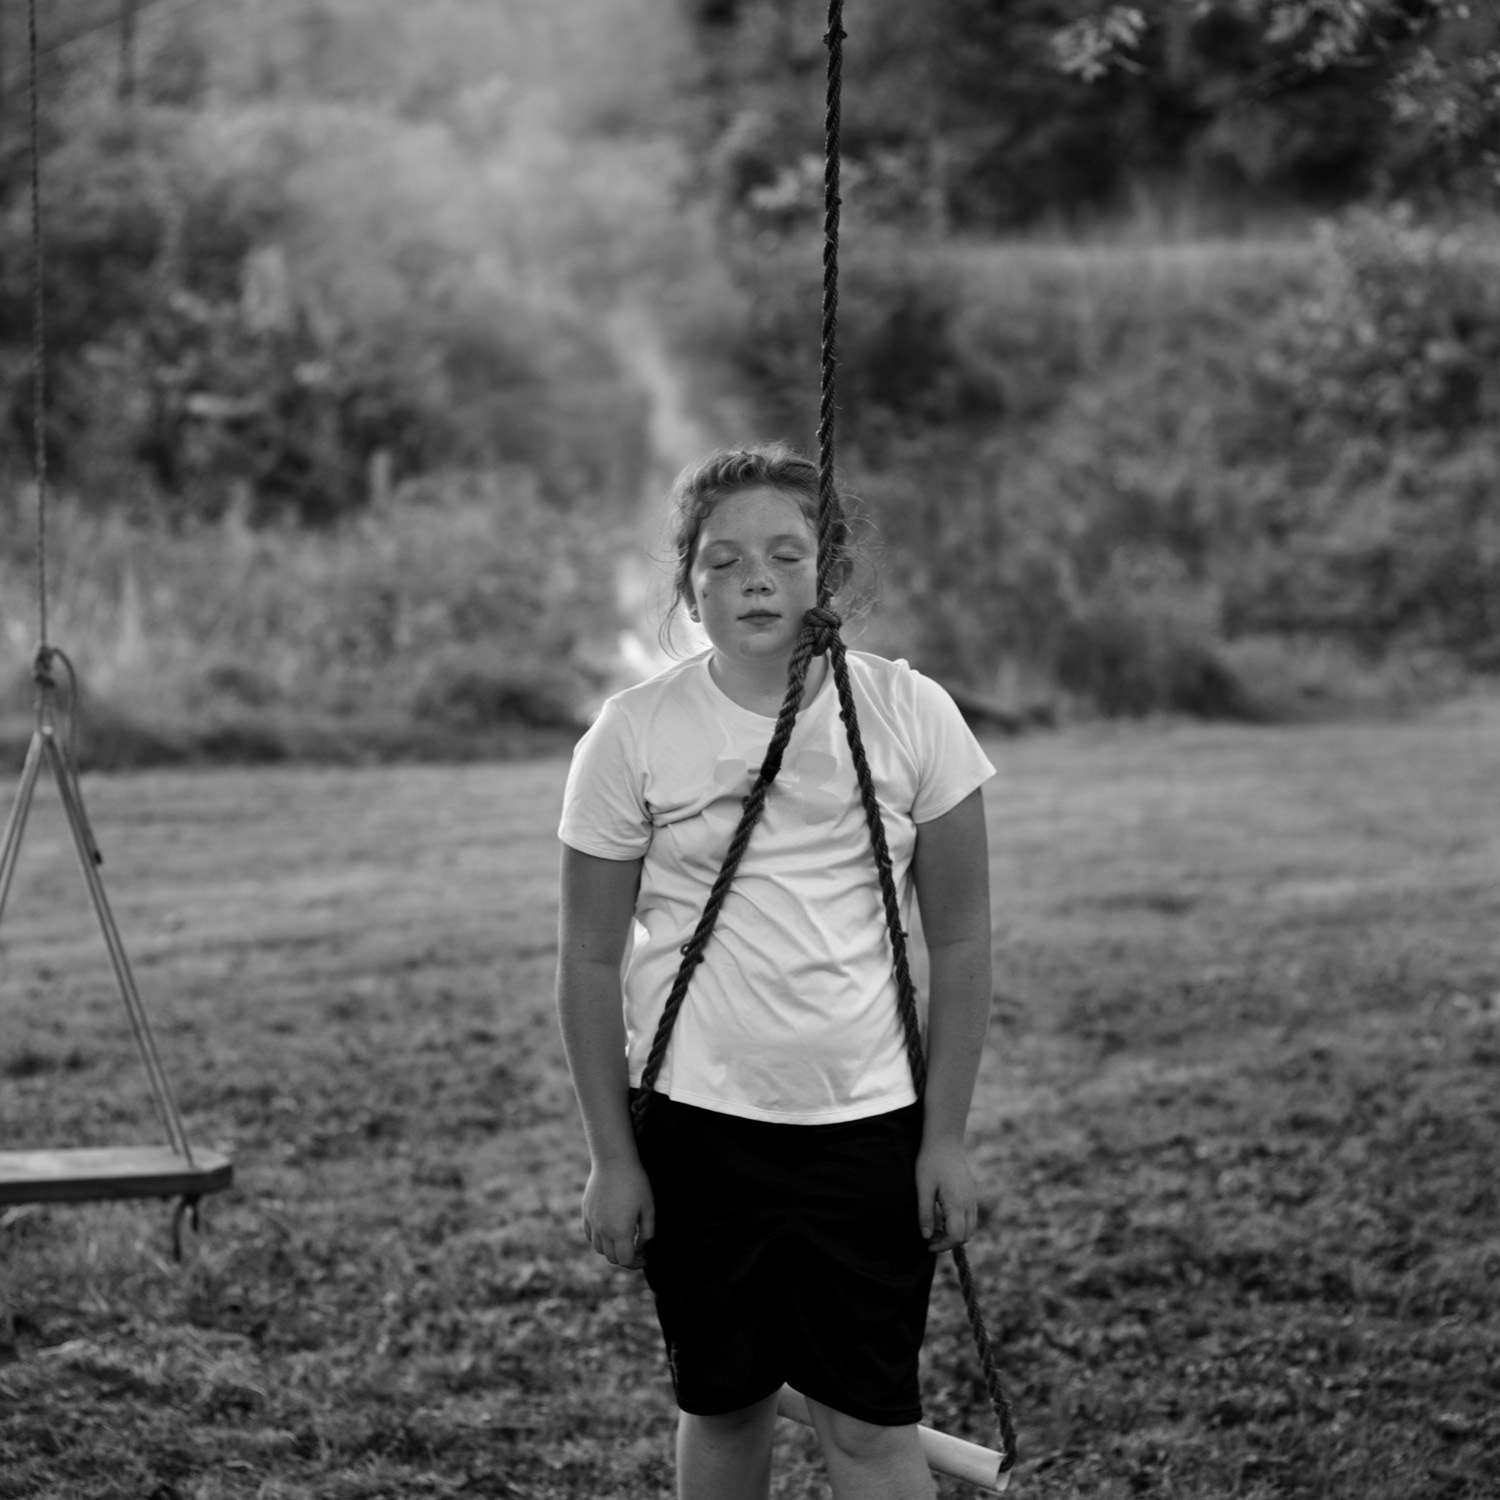 Gloria Baker Feinstein . October 2, 2014. Swings, Oil Springs, Johnson County, Kentucky.